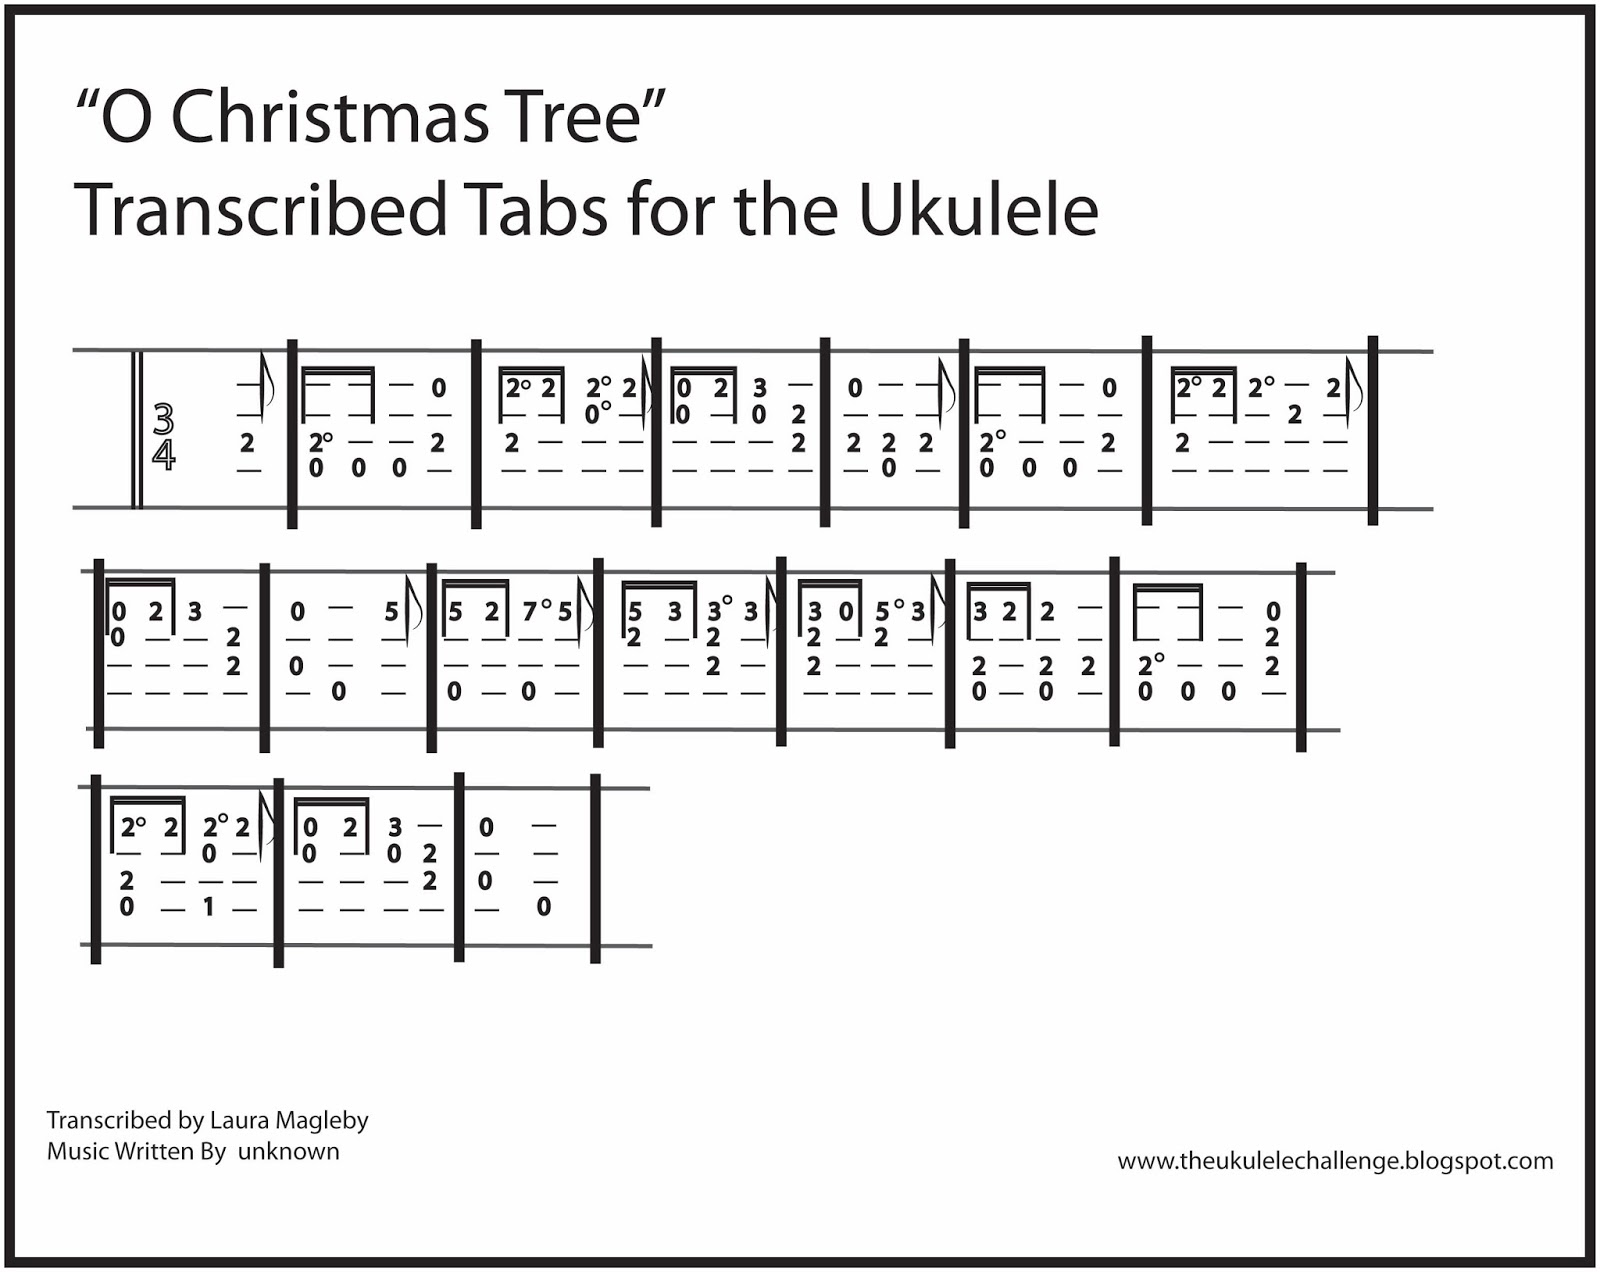 The Ukulele Challenge: O Christmas Tree